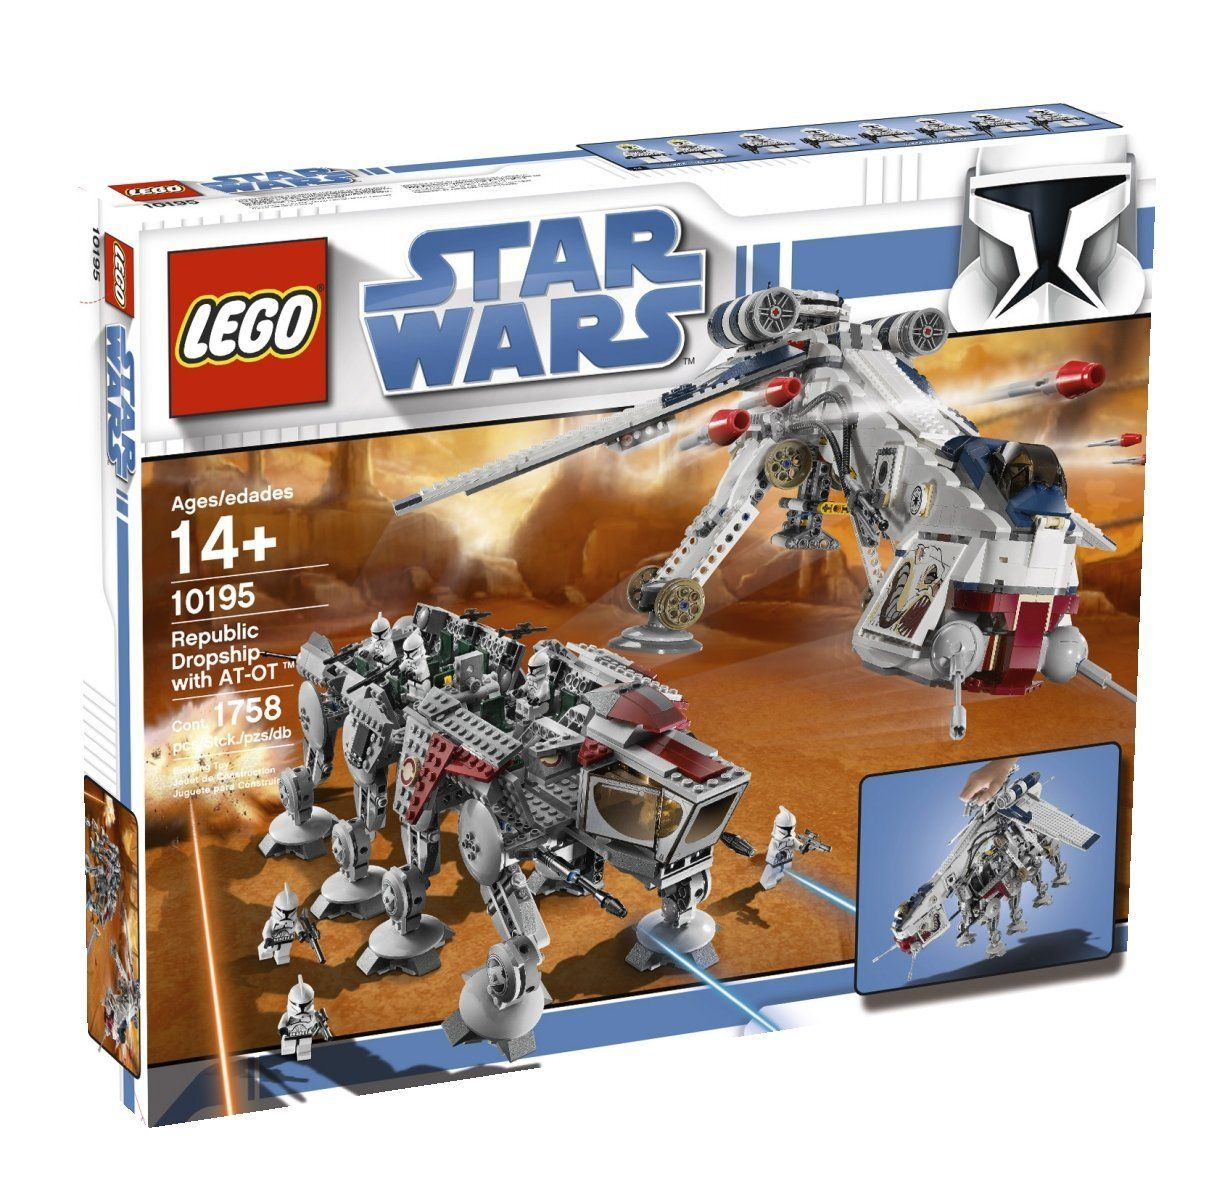 Image Result For Lego Star Wars Sets New Amazon Lego Lego Star